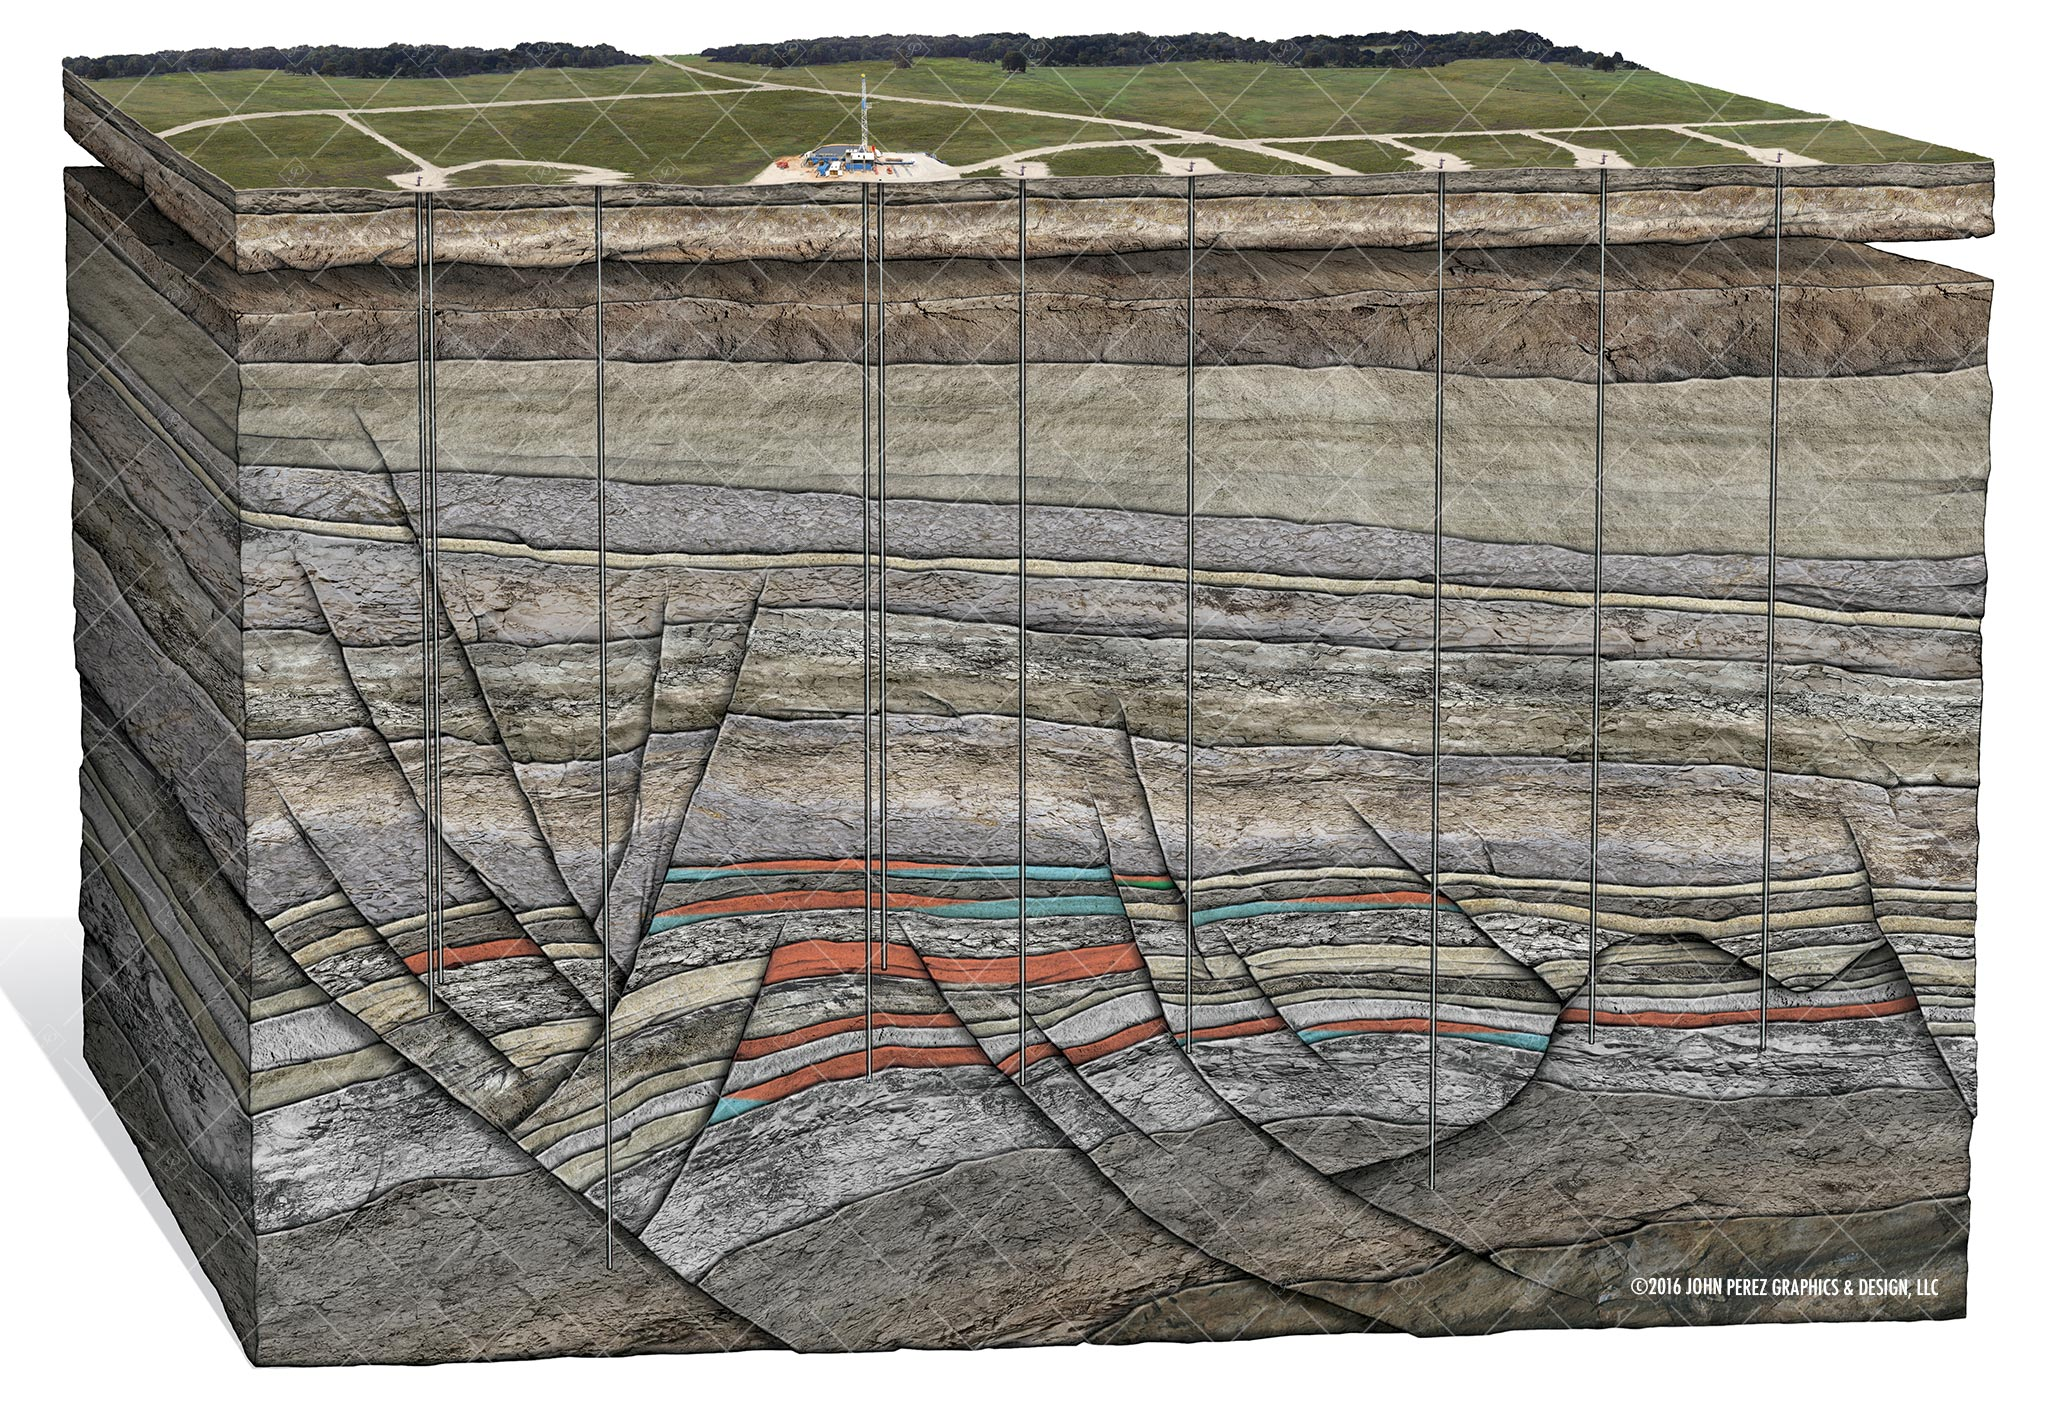 john perez graphics, drilling geology, Natural Gas Field Development Schematic, oil and gas graphics, oil and gas schematics